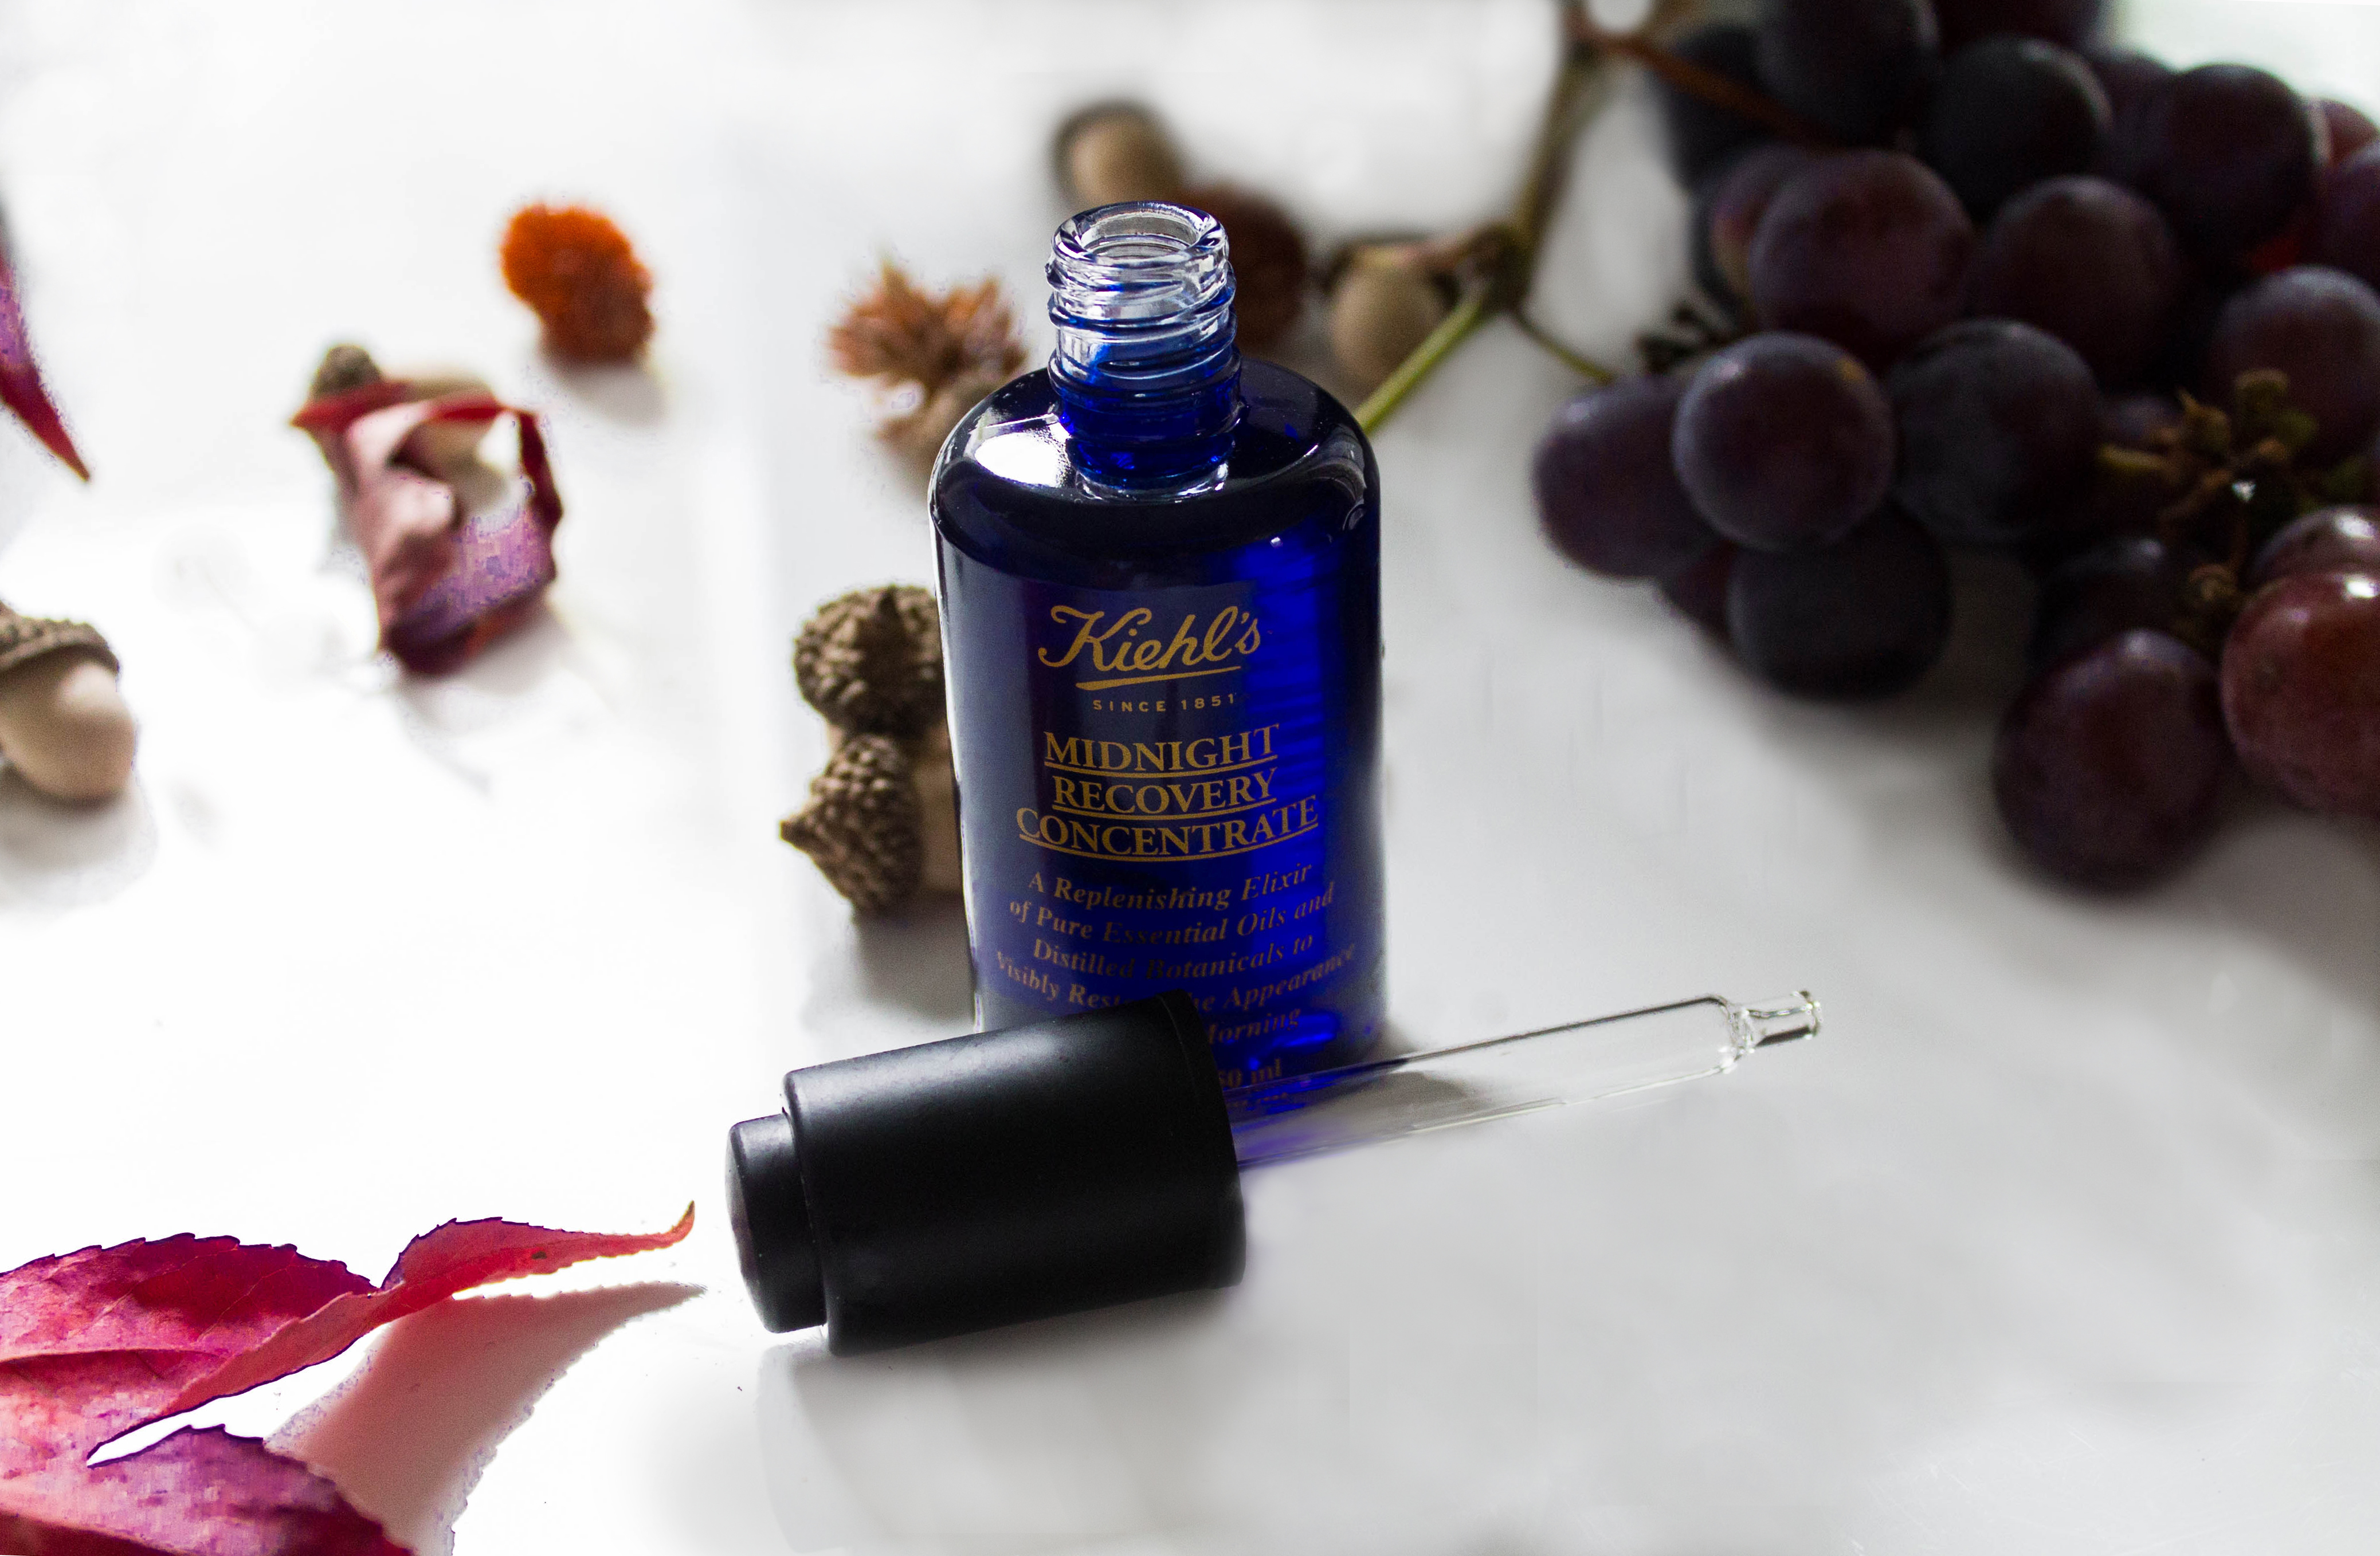 kiehls midnight recovery concentrate kardiaserena (2)